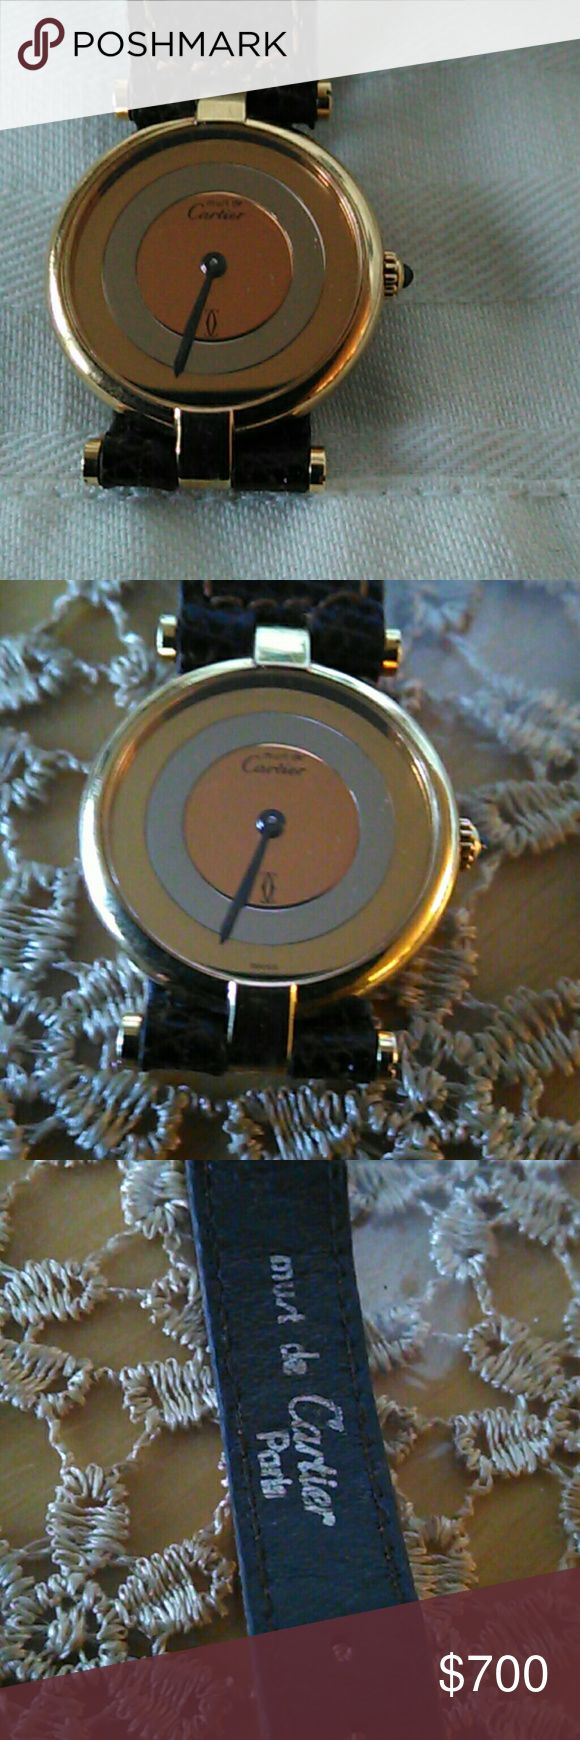 Stunning vintage Cartier ladies watch In very good working condition New battery works great  Original leather band Sapphire stone on crown  Three tone color dial Minor scratch on lens that can be polished Please see pix 100% authentic Cartier Other